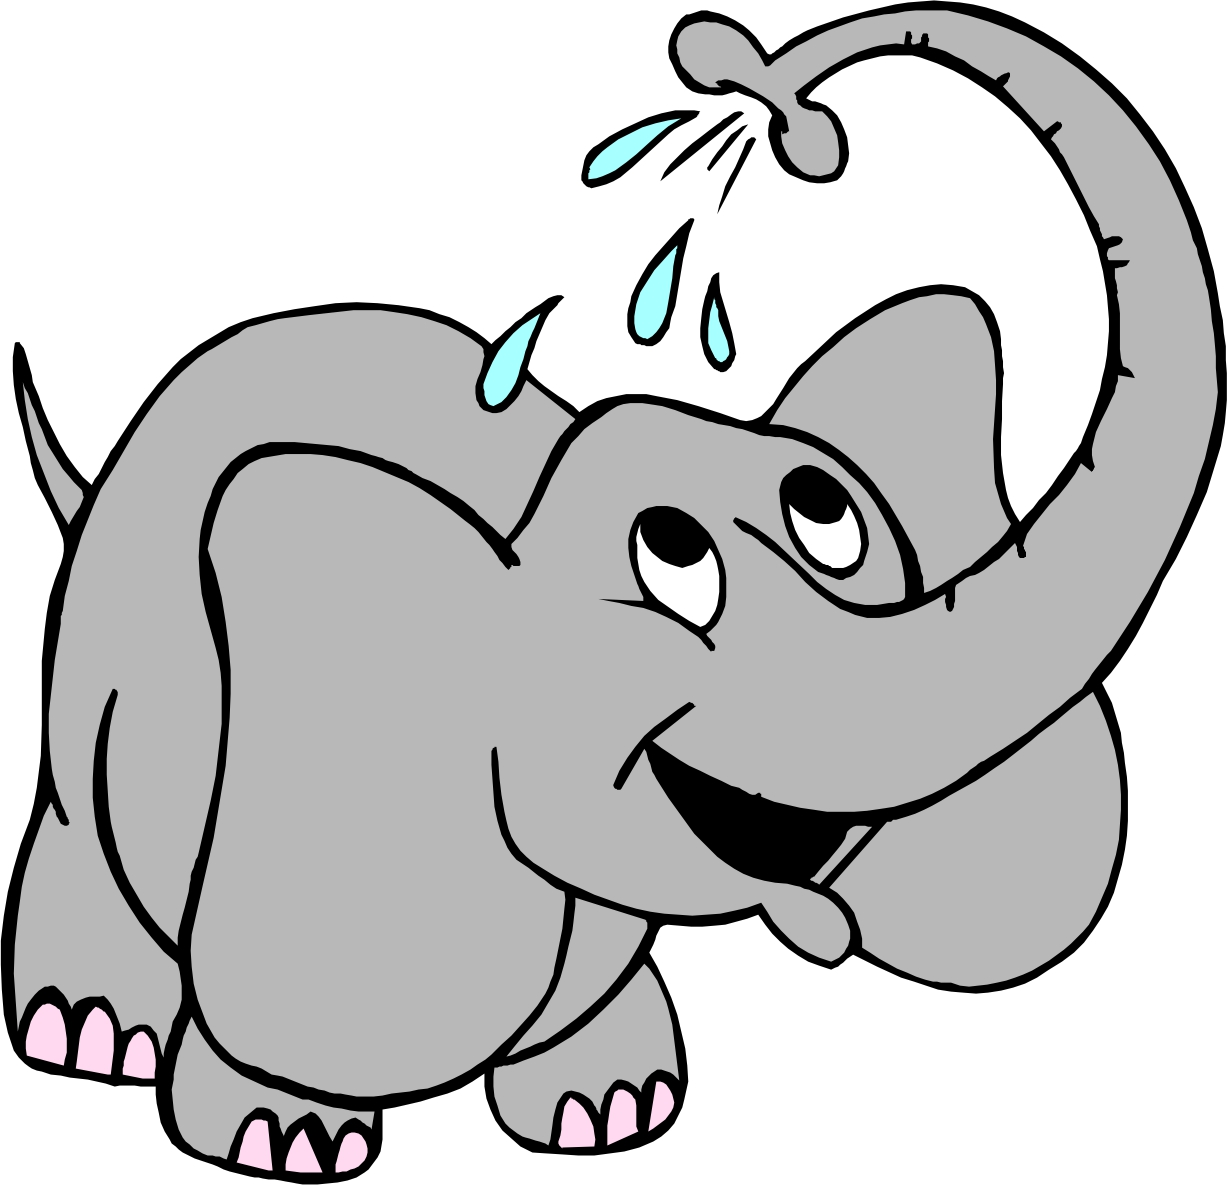 Elephant spraying water clipart free.